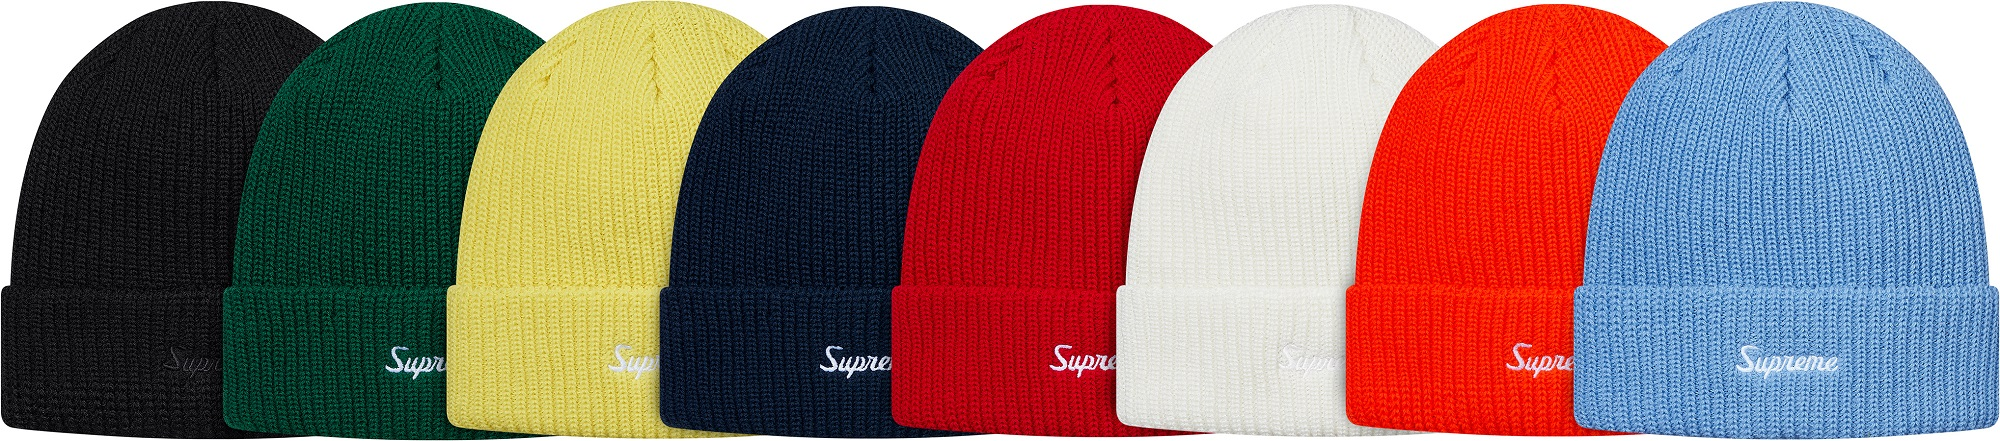 supreme-2017aw-fall-winter-loose-gauge-beanie